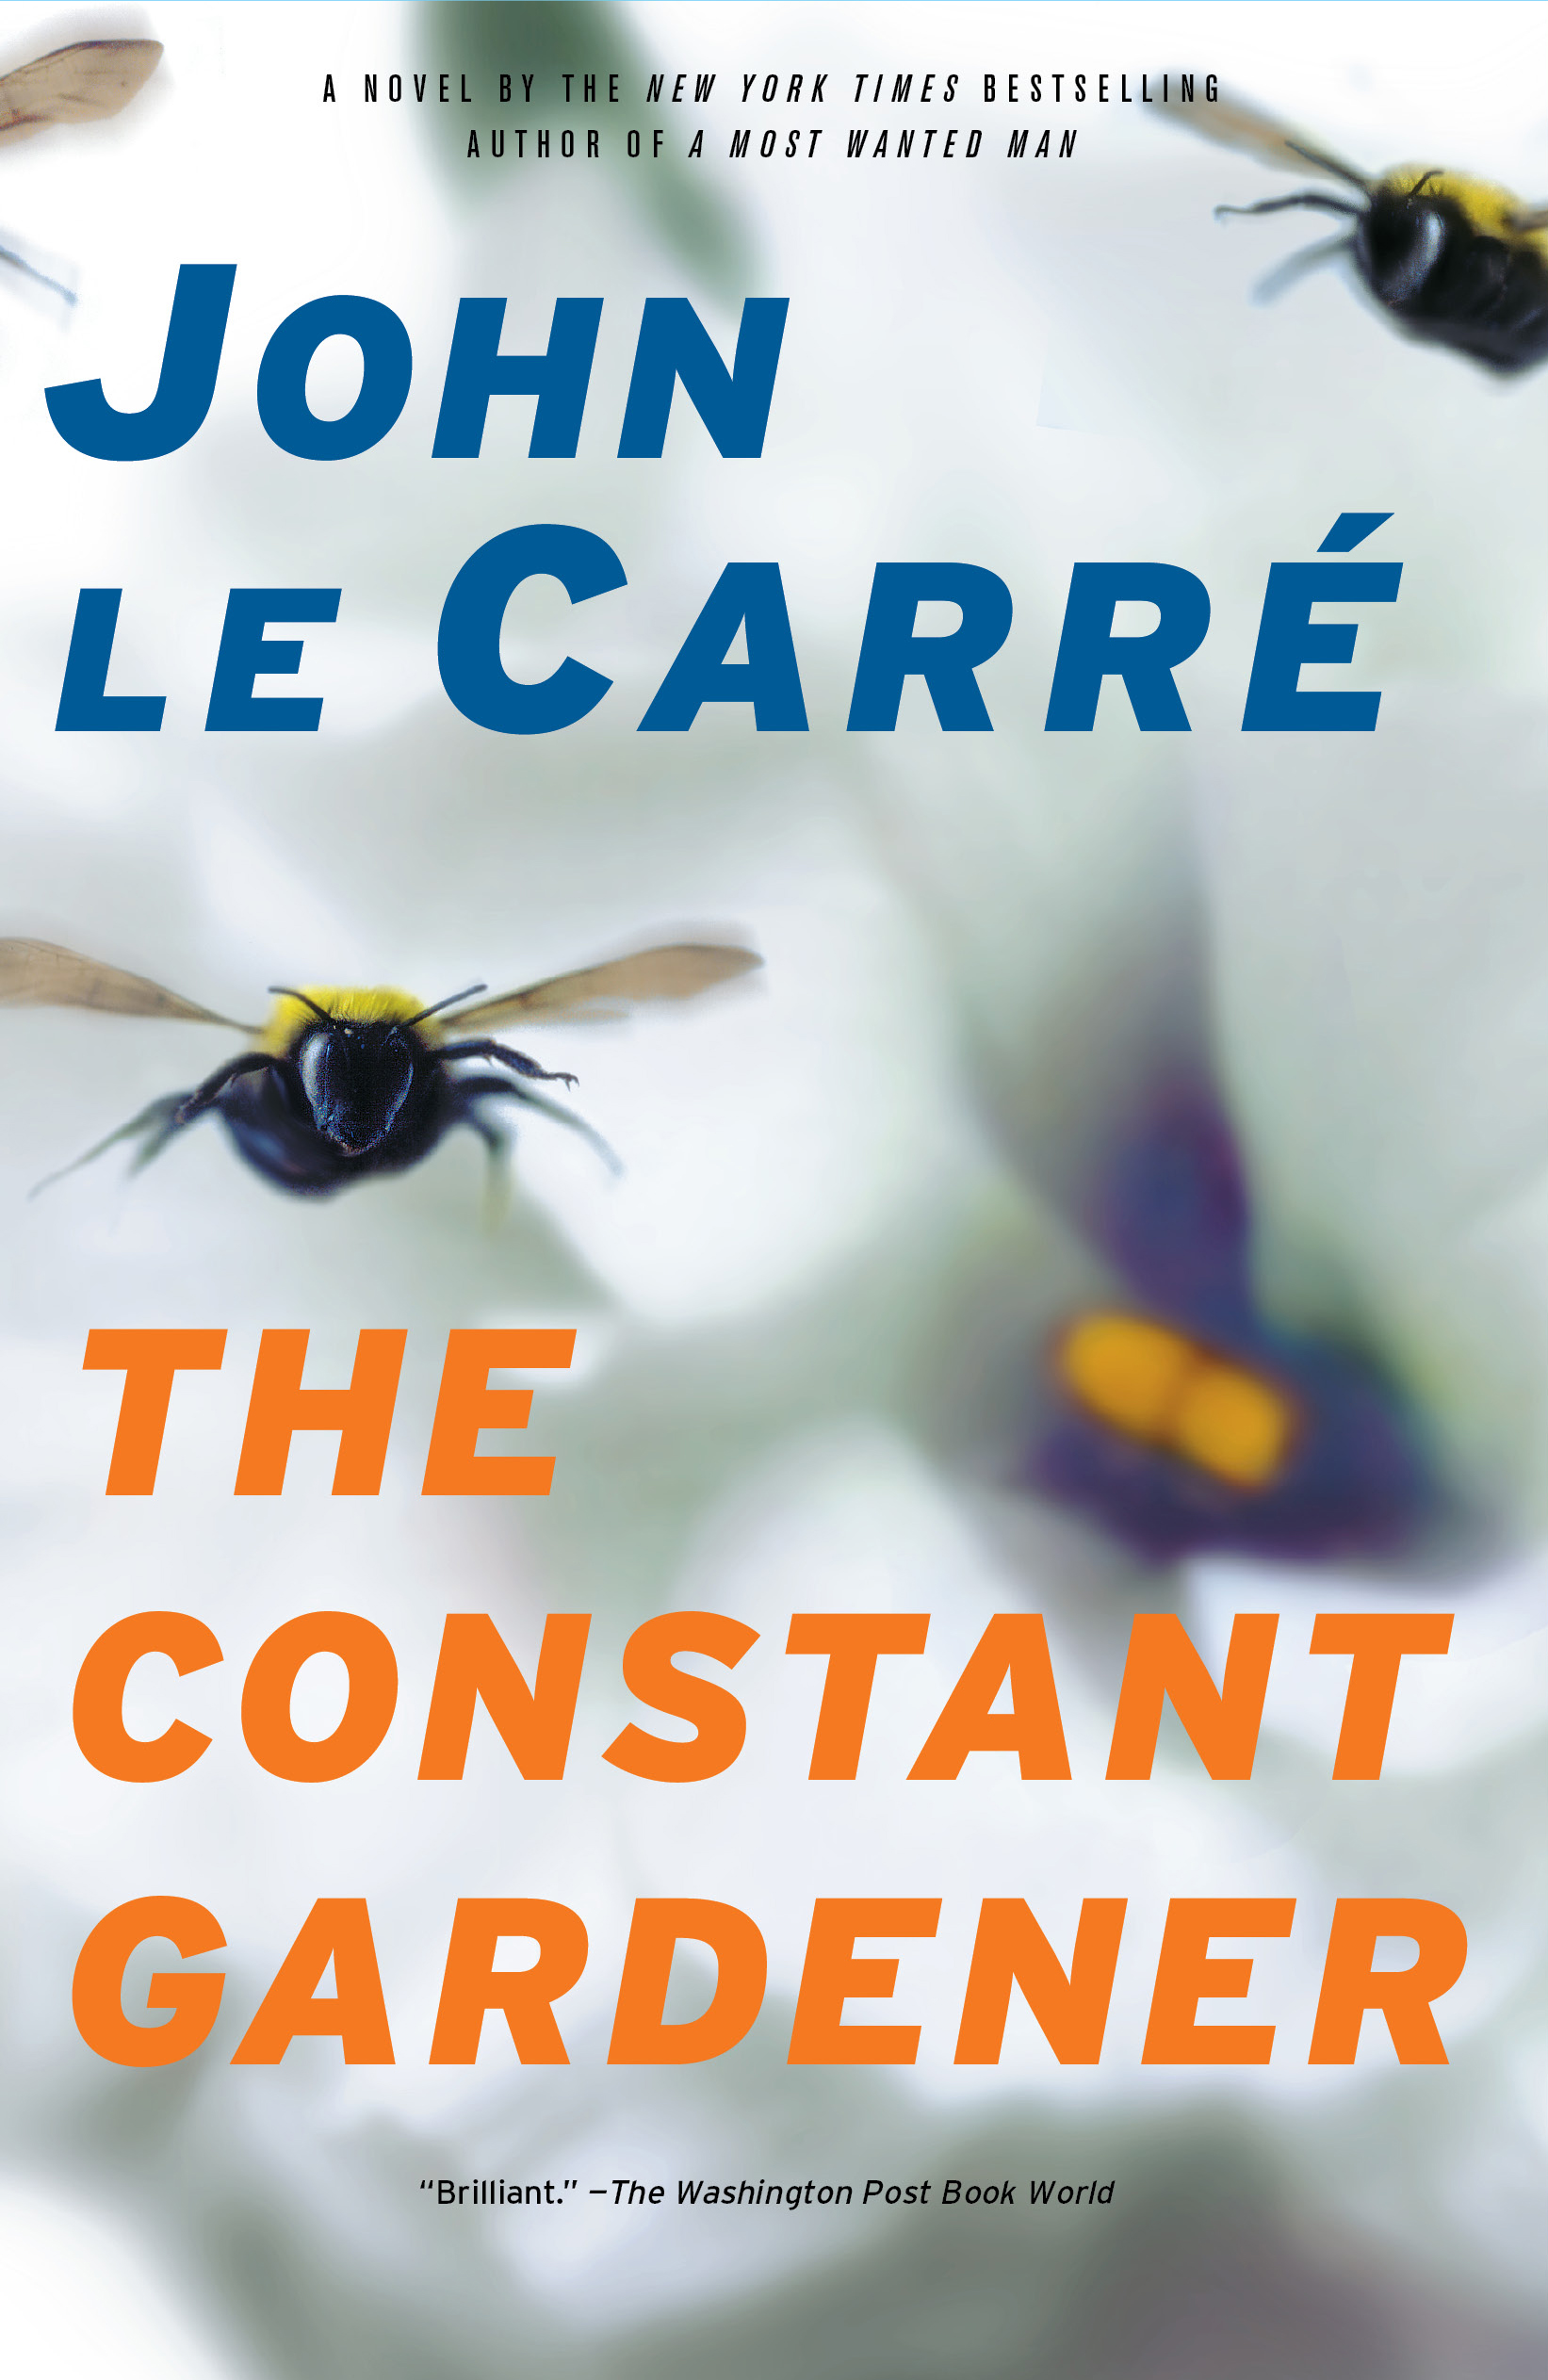 john le carre official publisher page simon schuster book cover image jpg the constant gardener